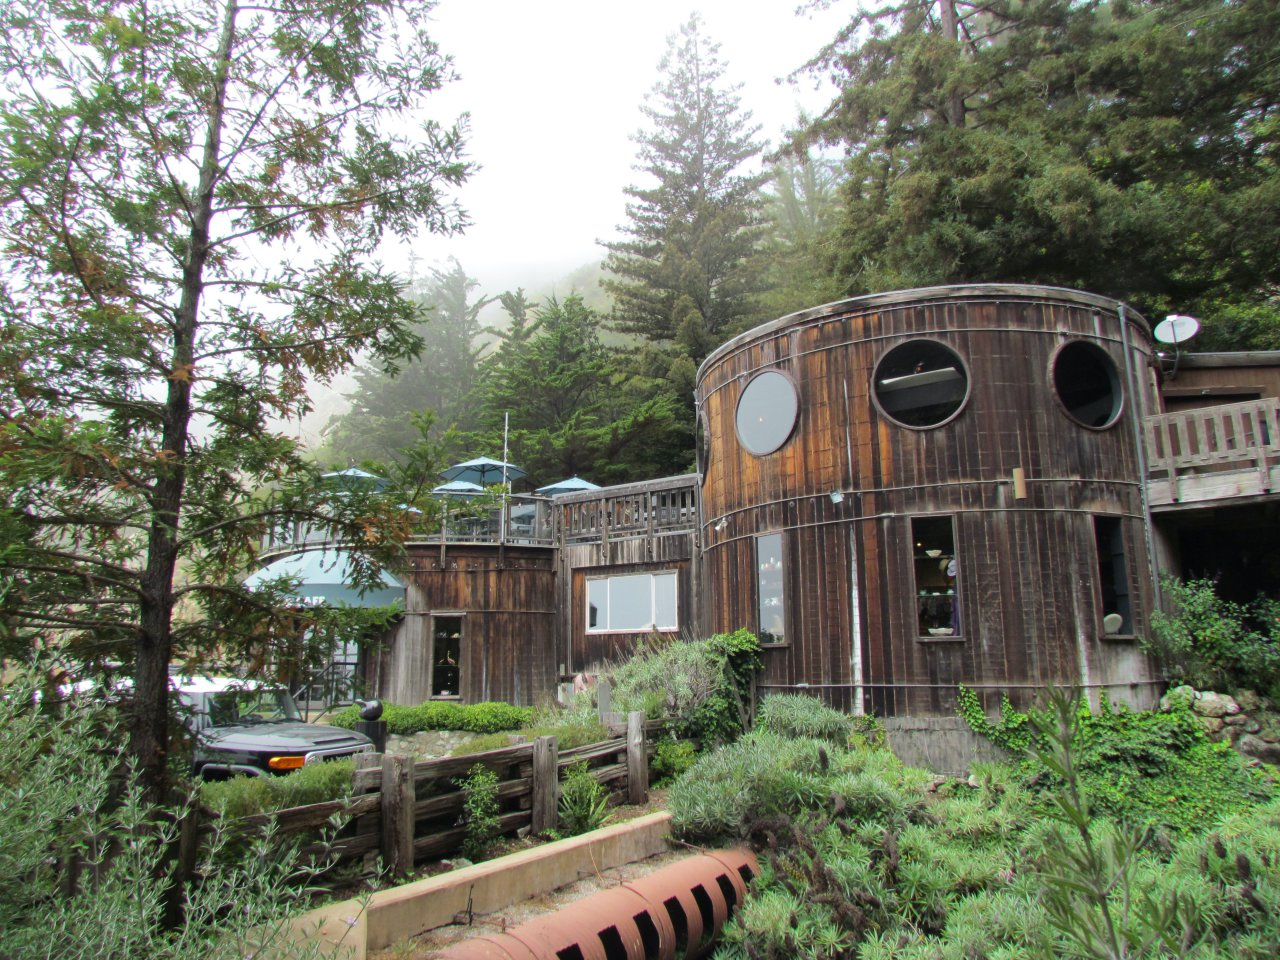 Coast down to Big Sur for a collector car treat